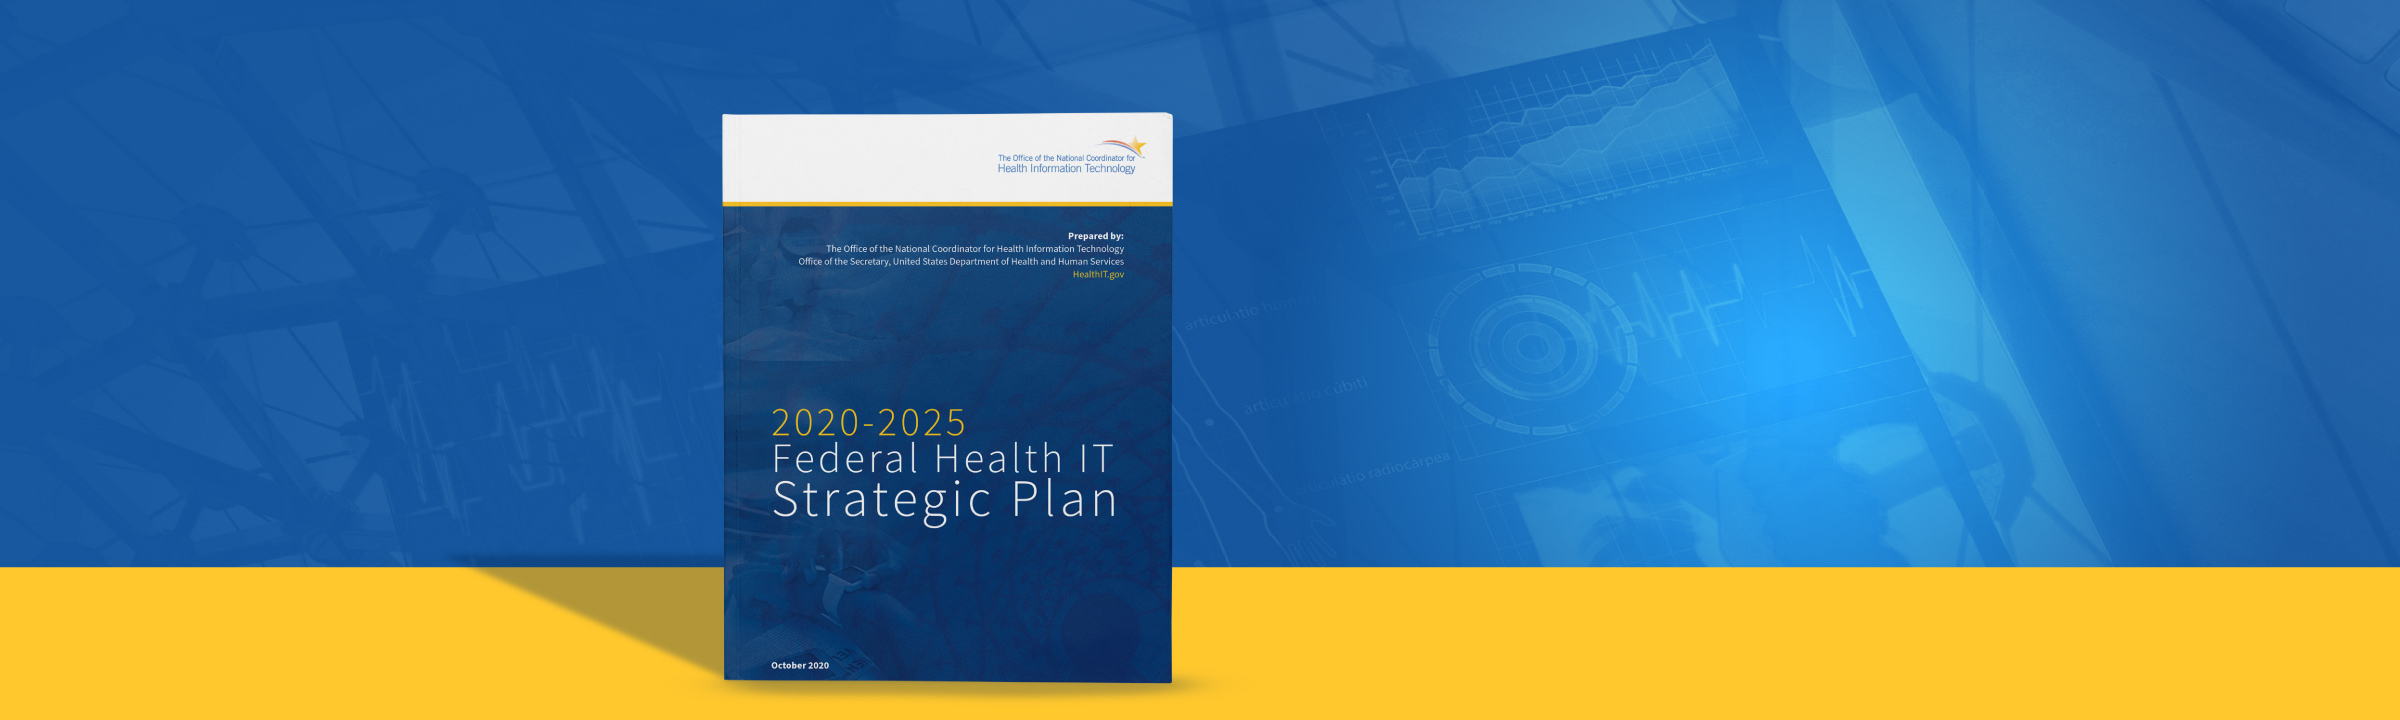 2020-2025 Federal Health IT Strategic Plan